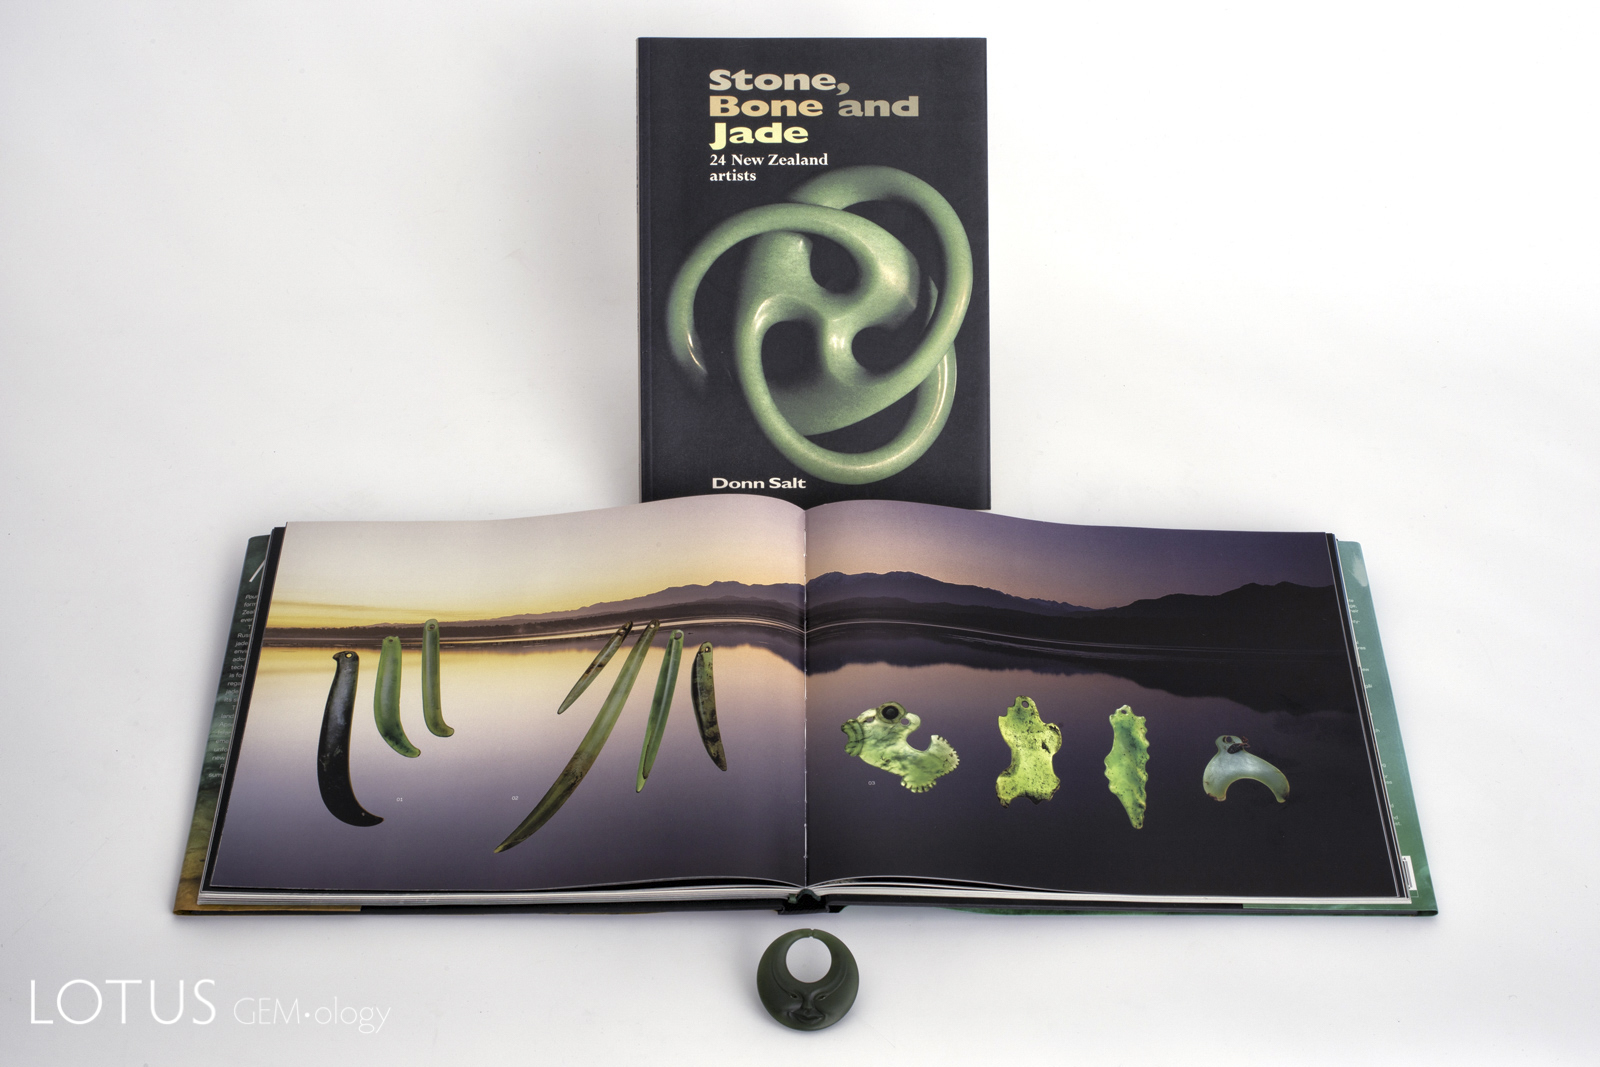 Master carver Donn Salt's book on New Zealand carving sits above a spread from Beck and Mason's lavish 2010 Pounamu: The Jade of New Zealand. In the foreground is an original Donn Salt carving in New Zealand nephrite jade.